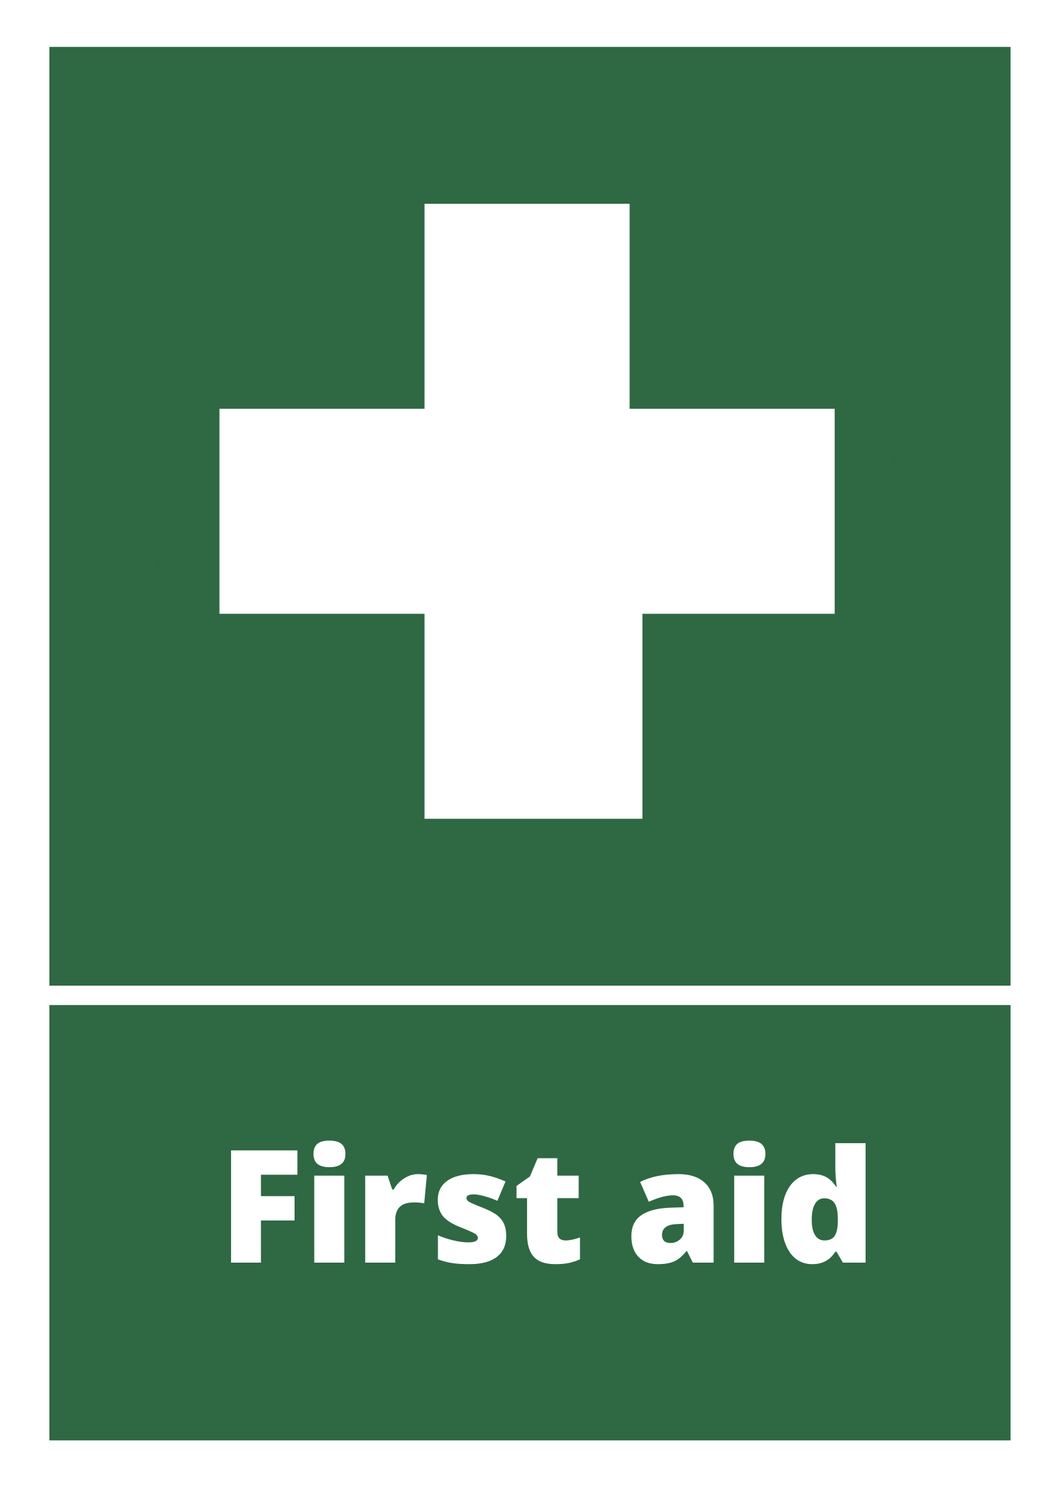 First Aid Poster Free Download